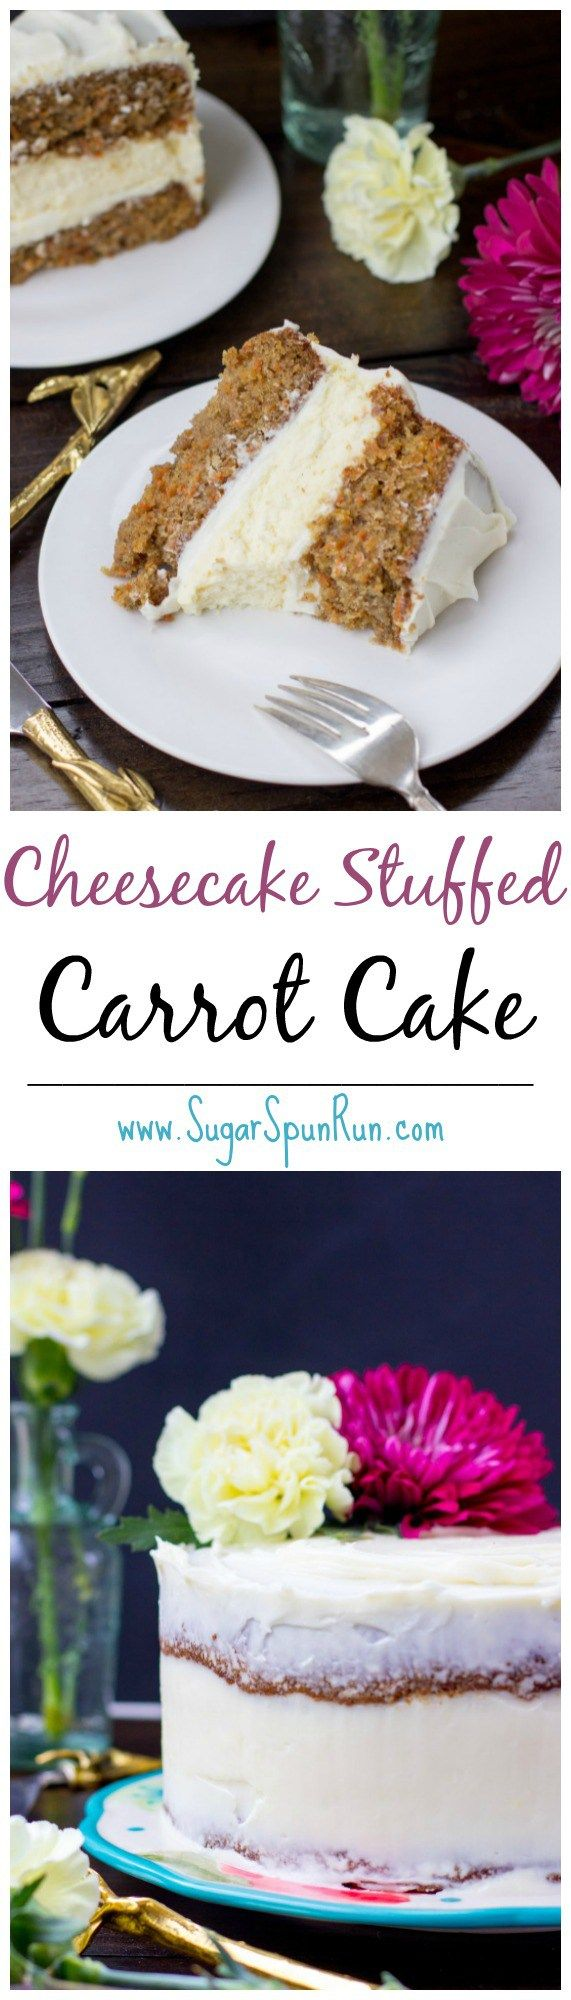 Pinner wrote: Cheesecake Stuffed Carrot Cake! This carrot cake is so moist and perfect, and the cheesecake layer is amazing!